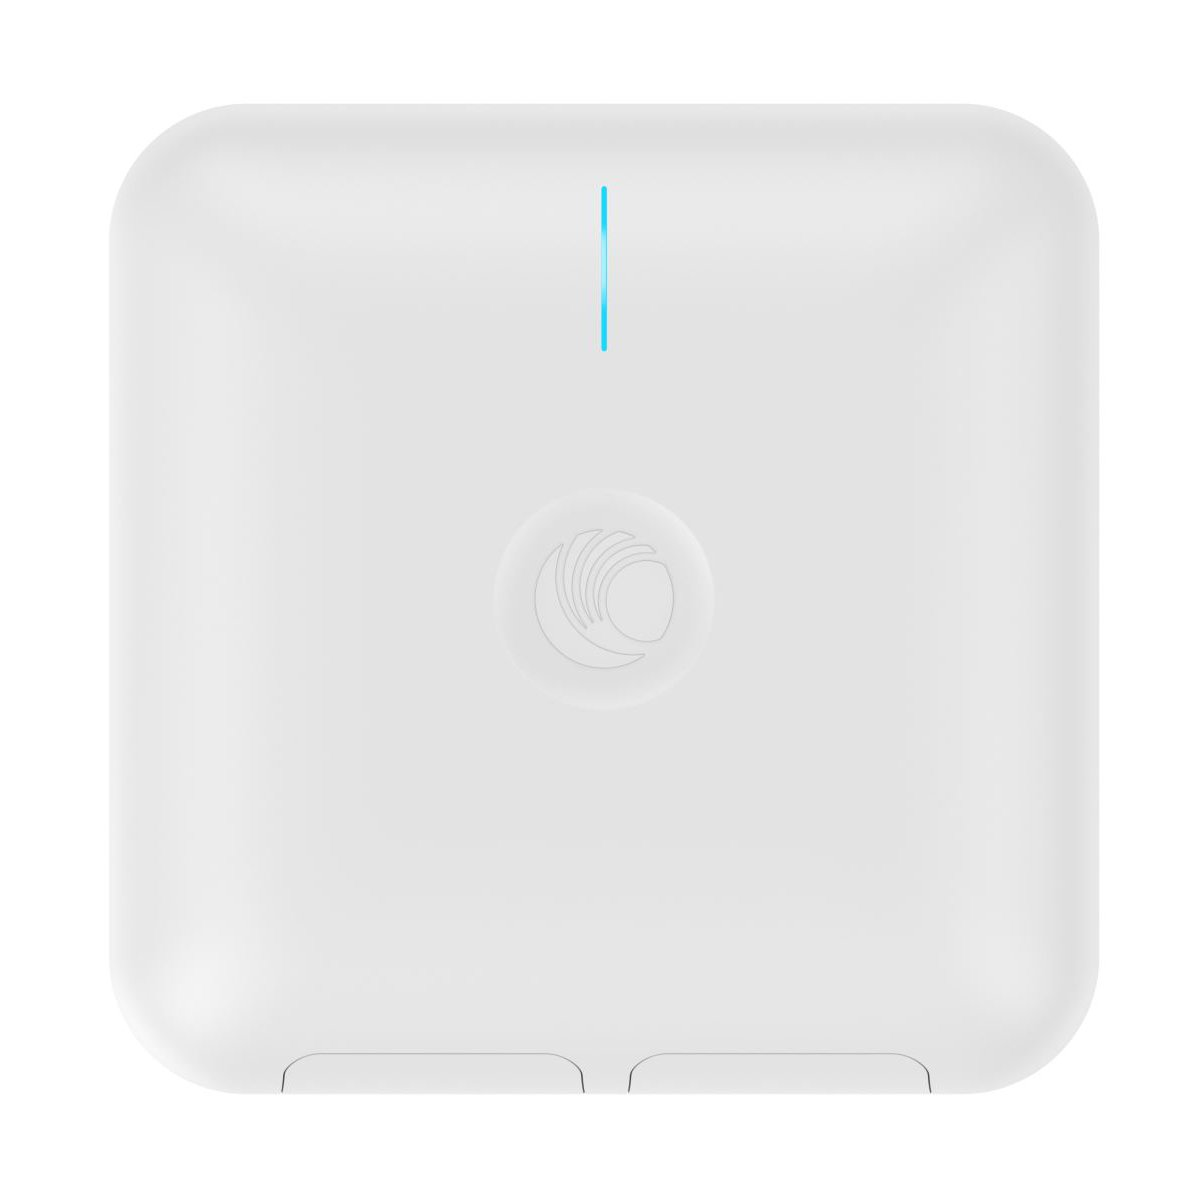 Cambium Networks cnPilot E600 Indoor Wireless Wi-Fi Access Point - Cloud Managed - Dual Band 2.4 GHz & 5 GHz 802.11ac - 4x4 MIMO Technology - PoE Wi-Fi Mesh Capable (PL-E600PUSA-US)